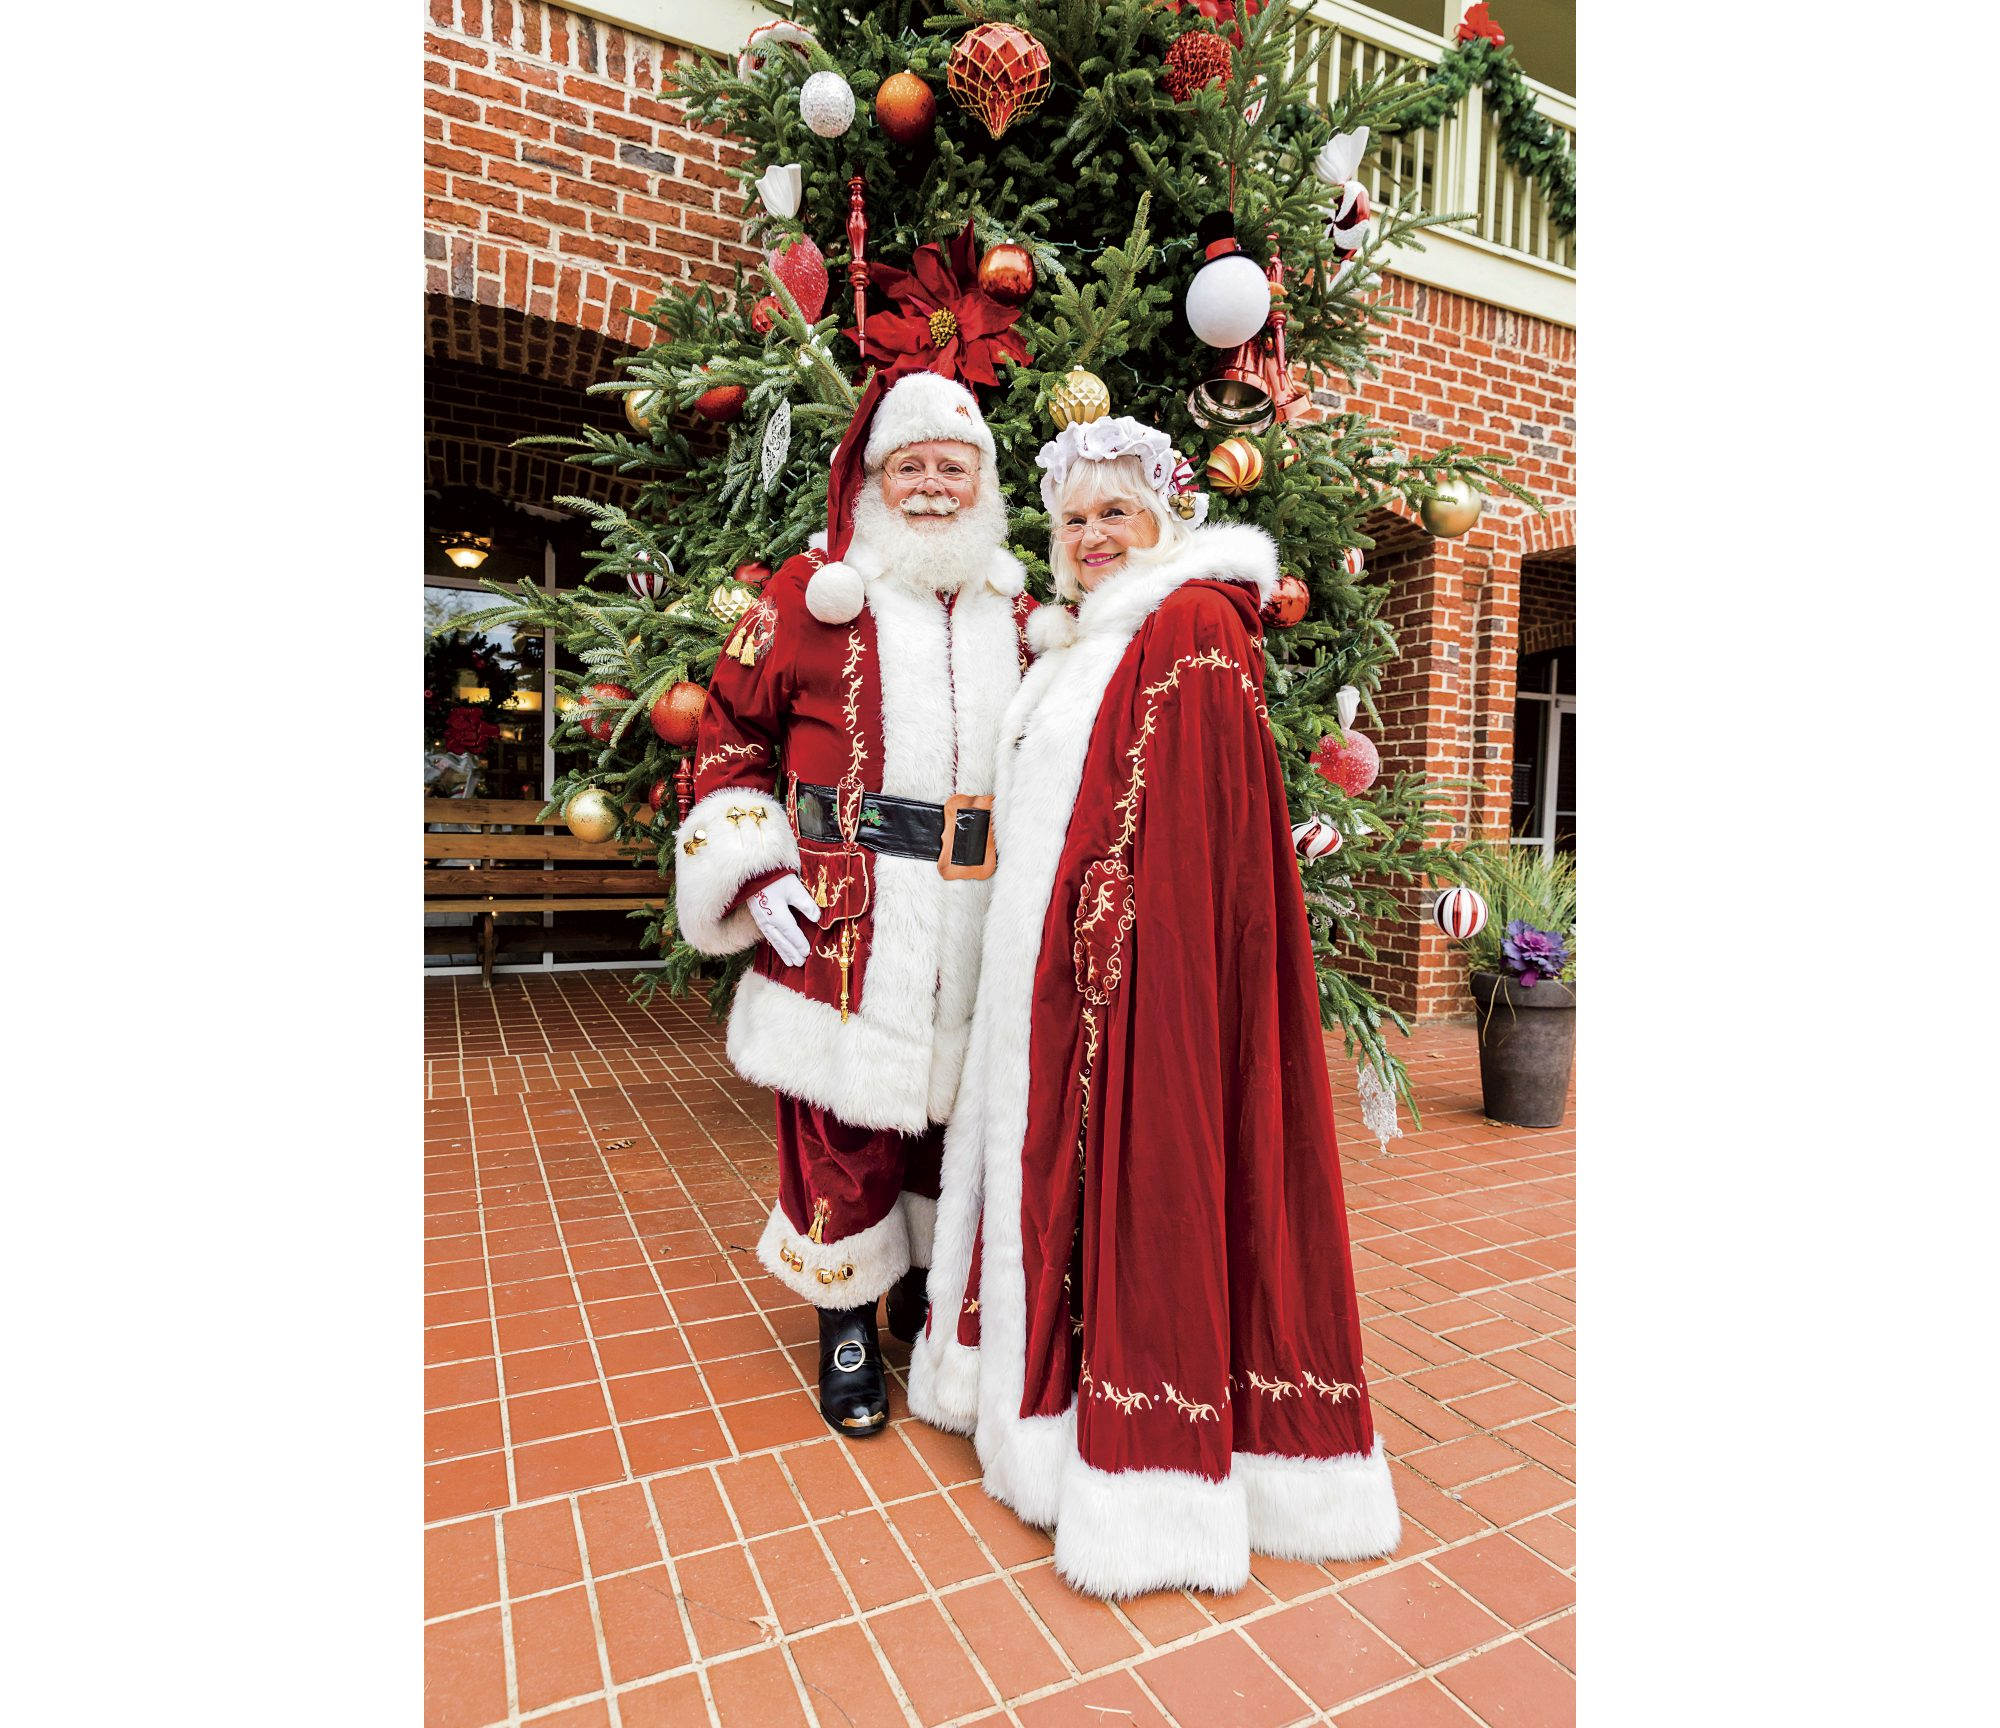 Mr. and Mrs. Claus in Dahlonega, GA